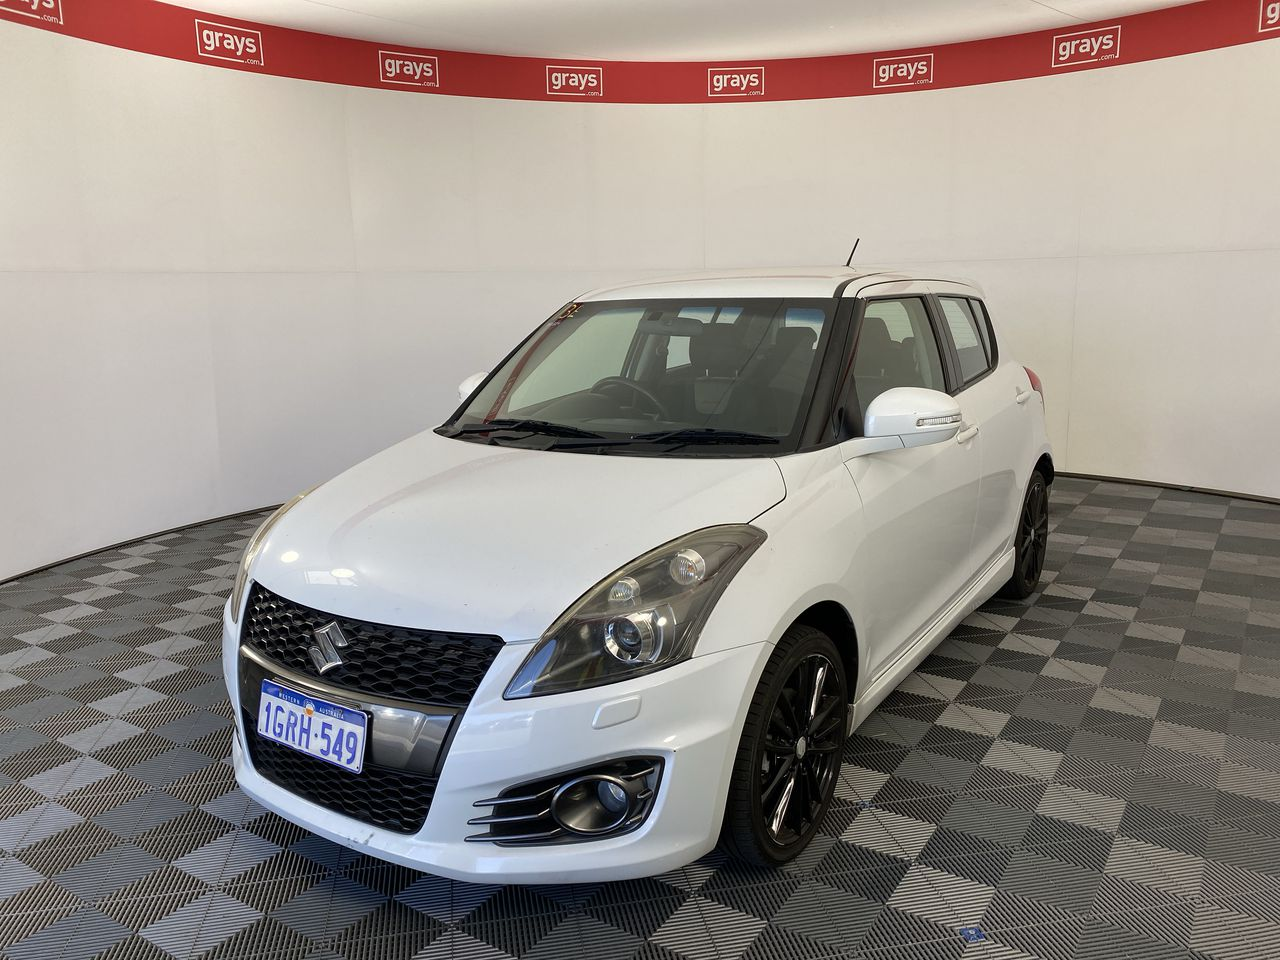 2012 Suzuki Swift Sport FZ Automatic Hatchback